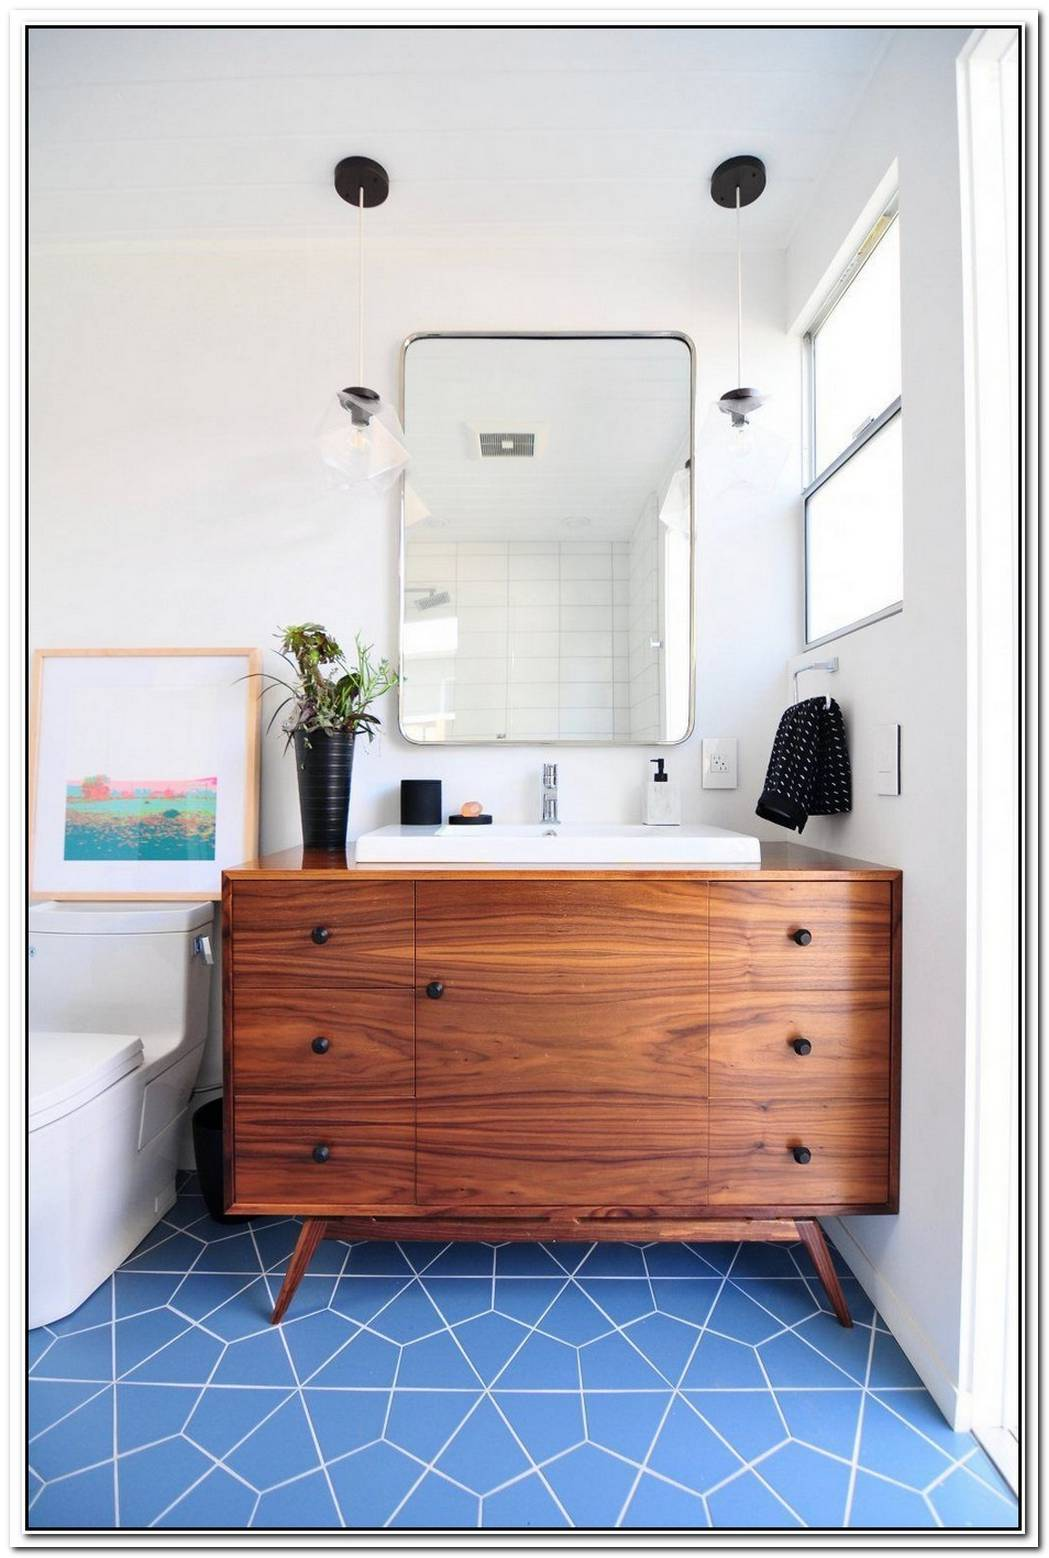 14 Midcentury Modern Bathroom Tile Ideas